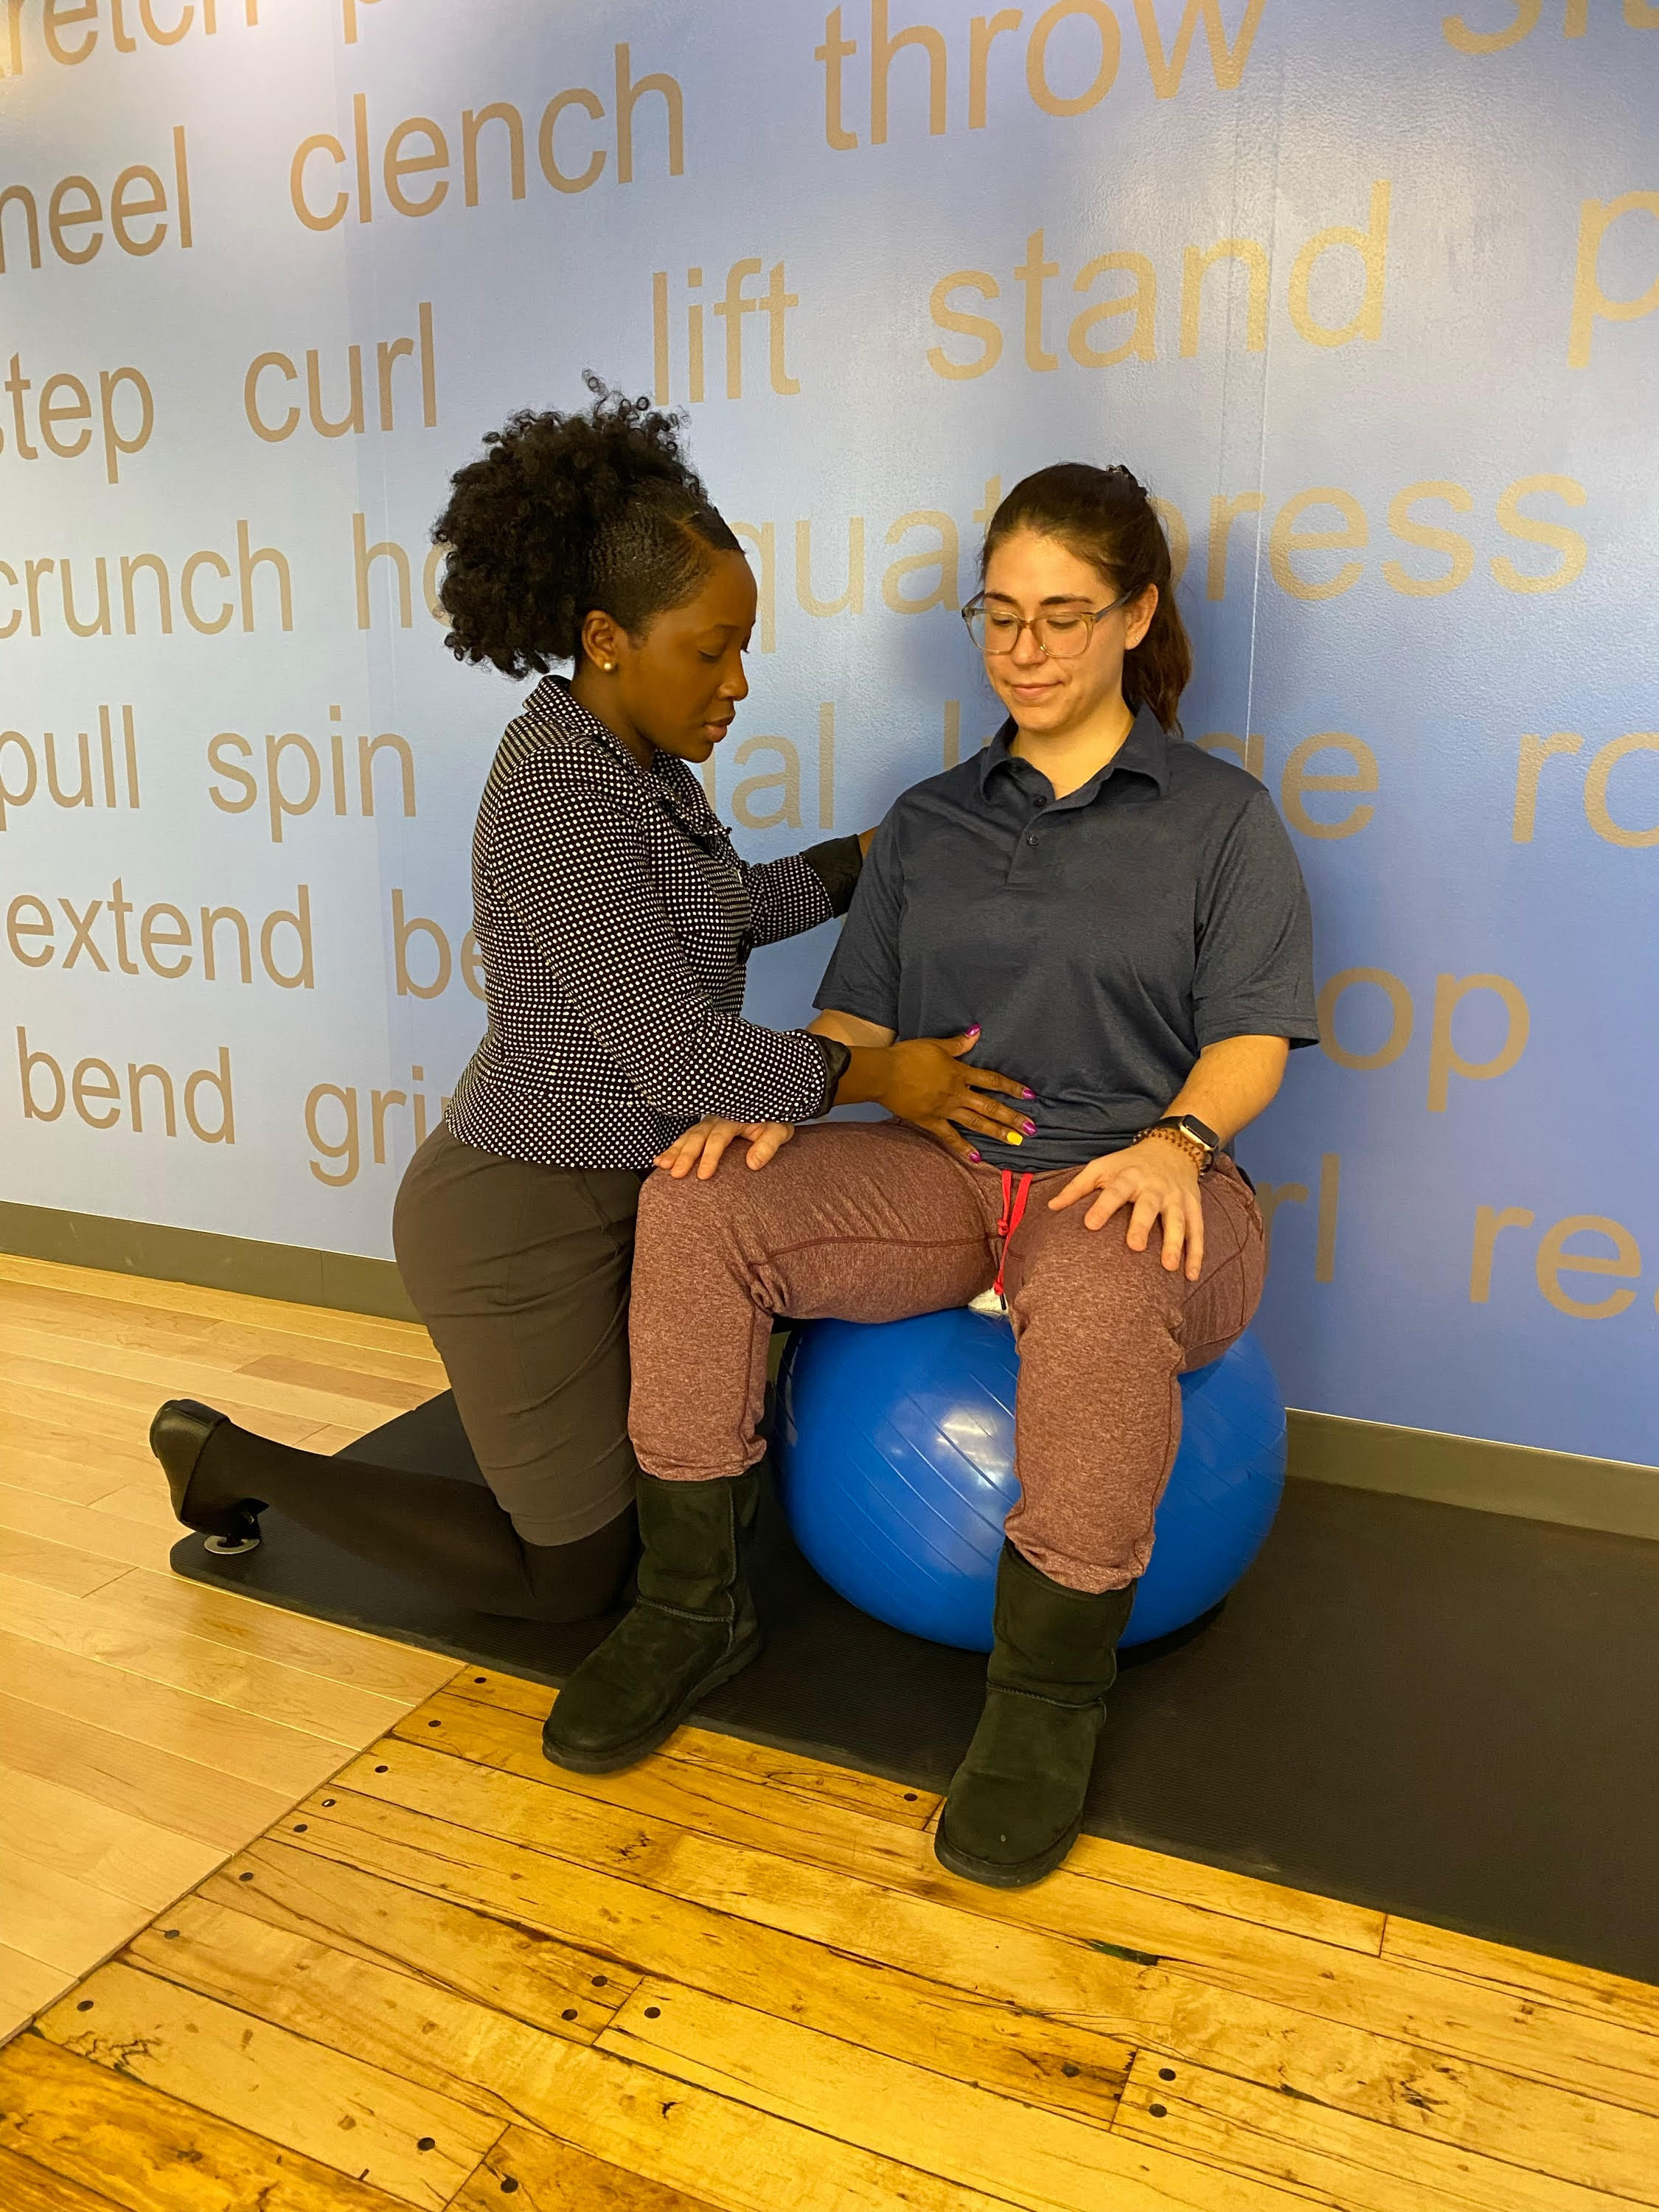 physical therapy, Spine & Sports Health Center, physical therapy nj, pelvic floor care, postpartum care, pregnancy care